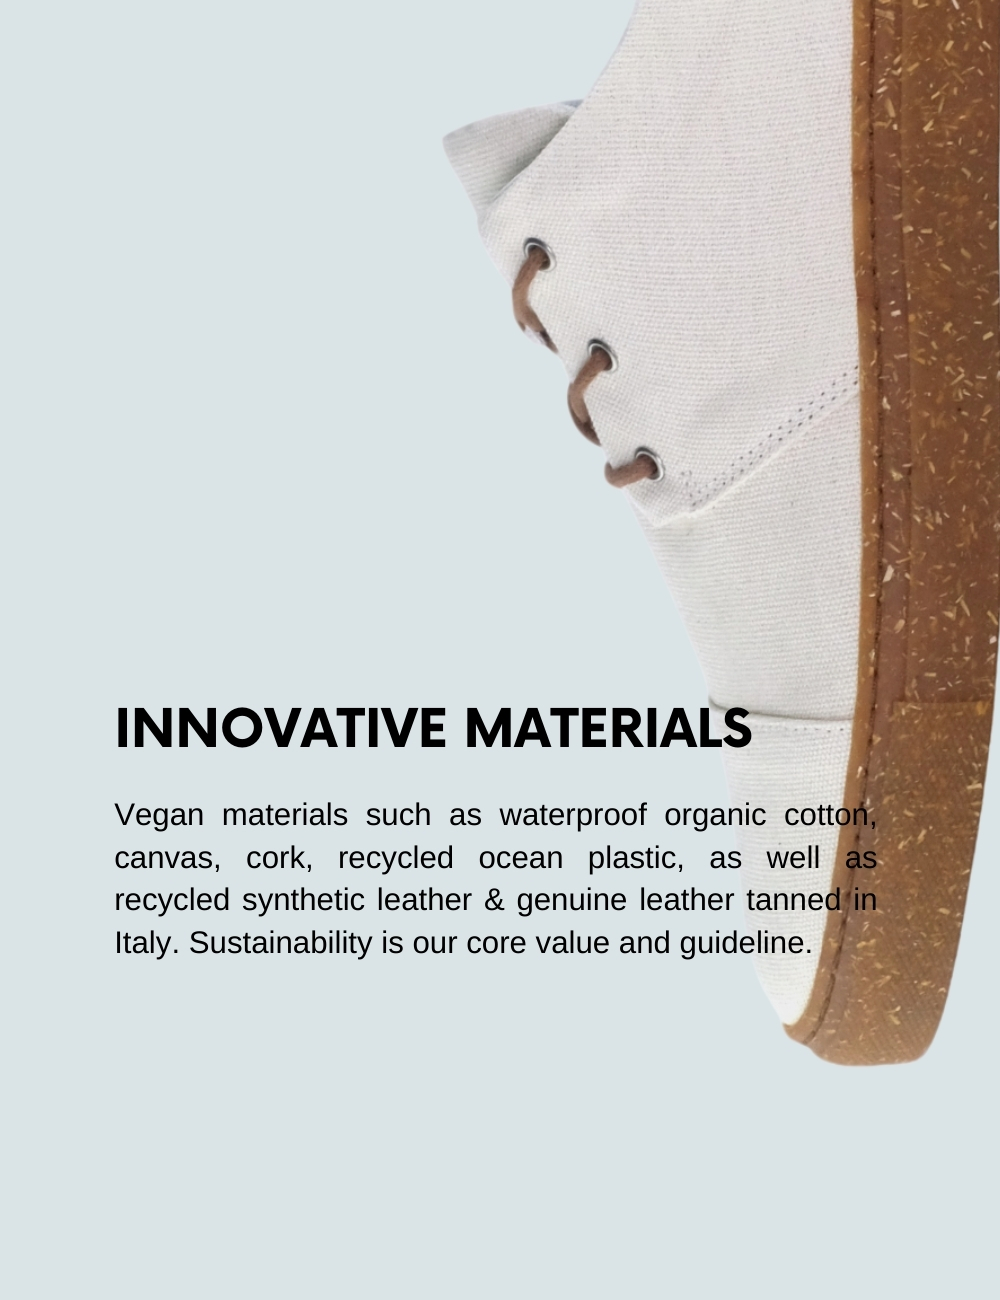 Sorbas Shoes production Europe sustainable